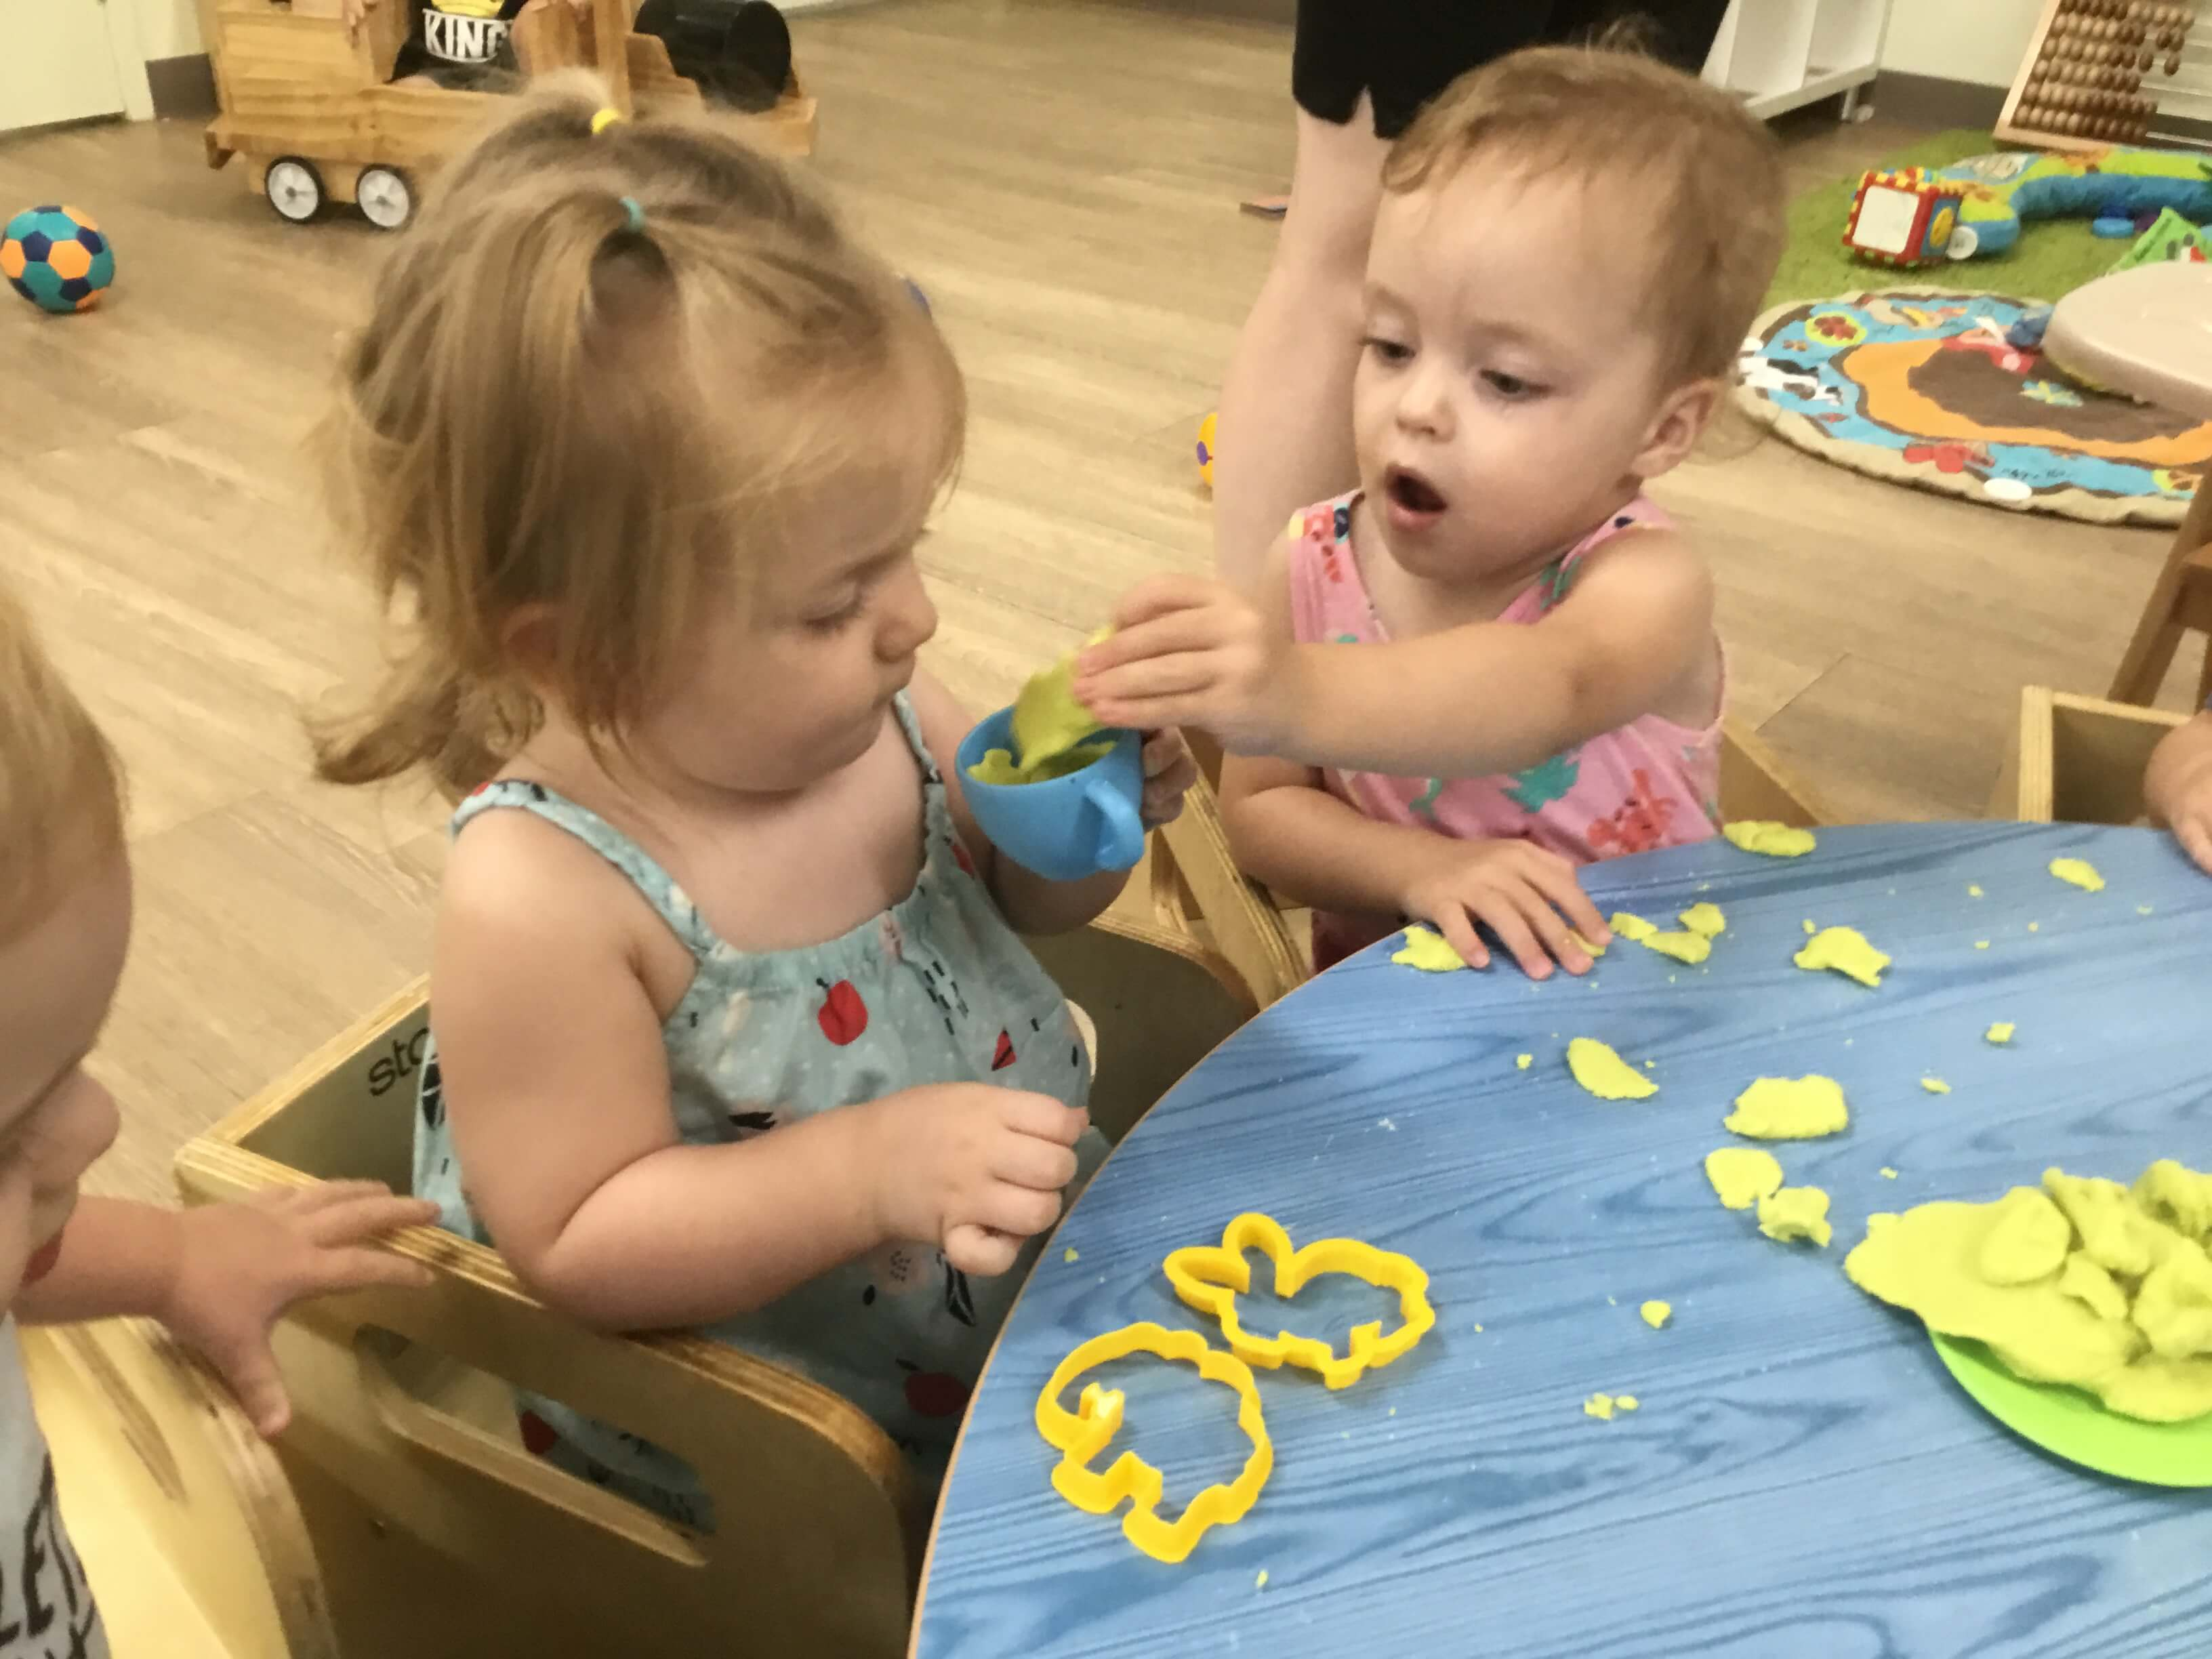 As mentioned yesterday, while we follow the children's interests, there is a lot of in-depth learning taking place in every one of our six studios. These two beautiful girls were quietly playing alongside each other with some play dough, when one noticed that her friend sitting next to her should have some play dough in […]